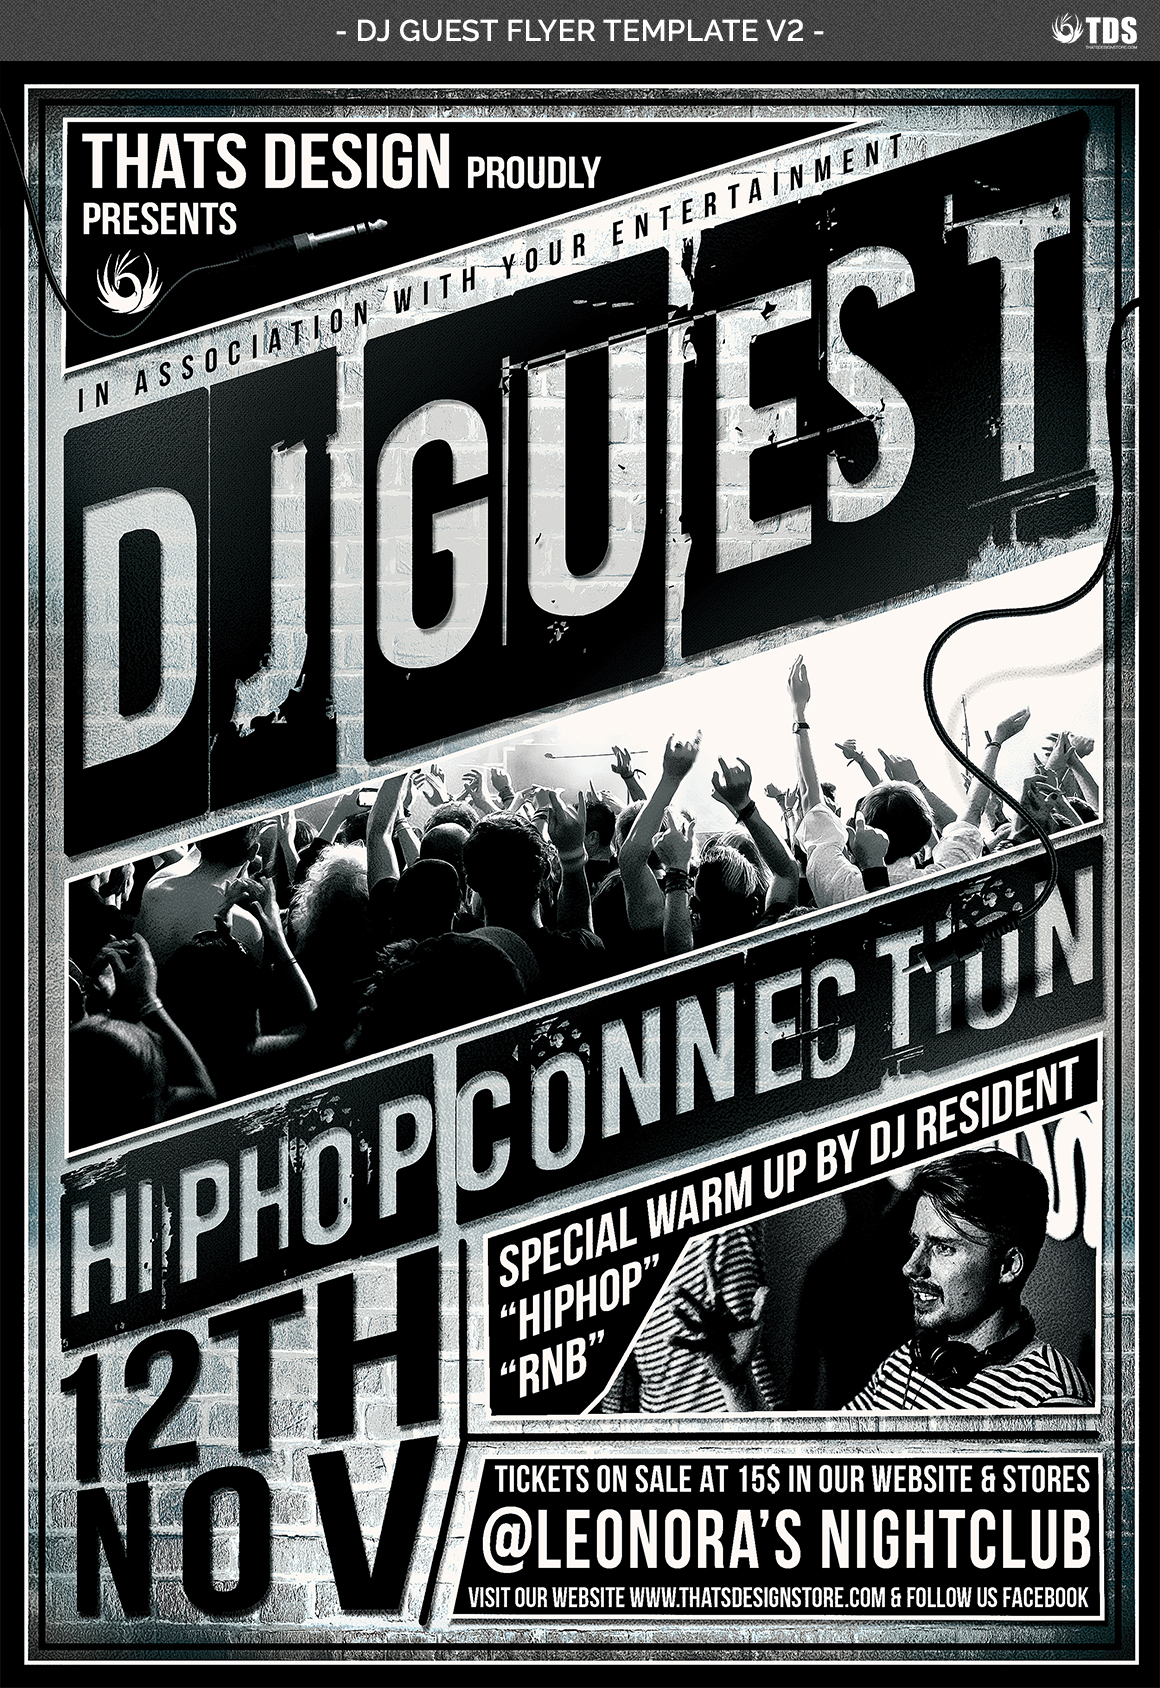 DJ Guest Flyer Template V2 example image 4